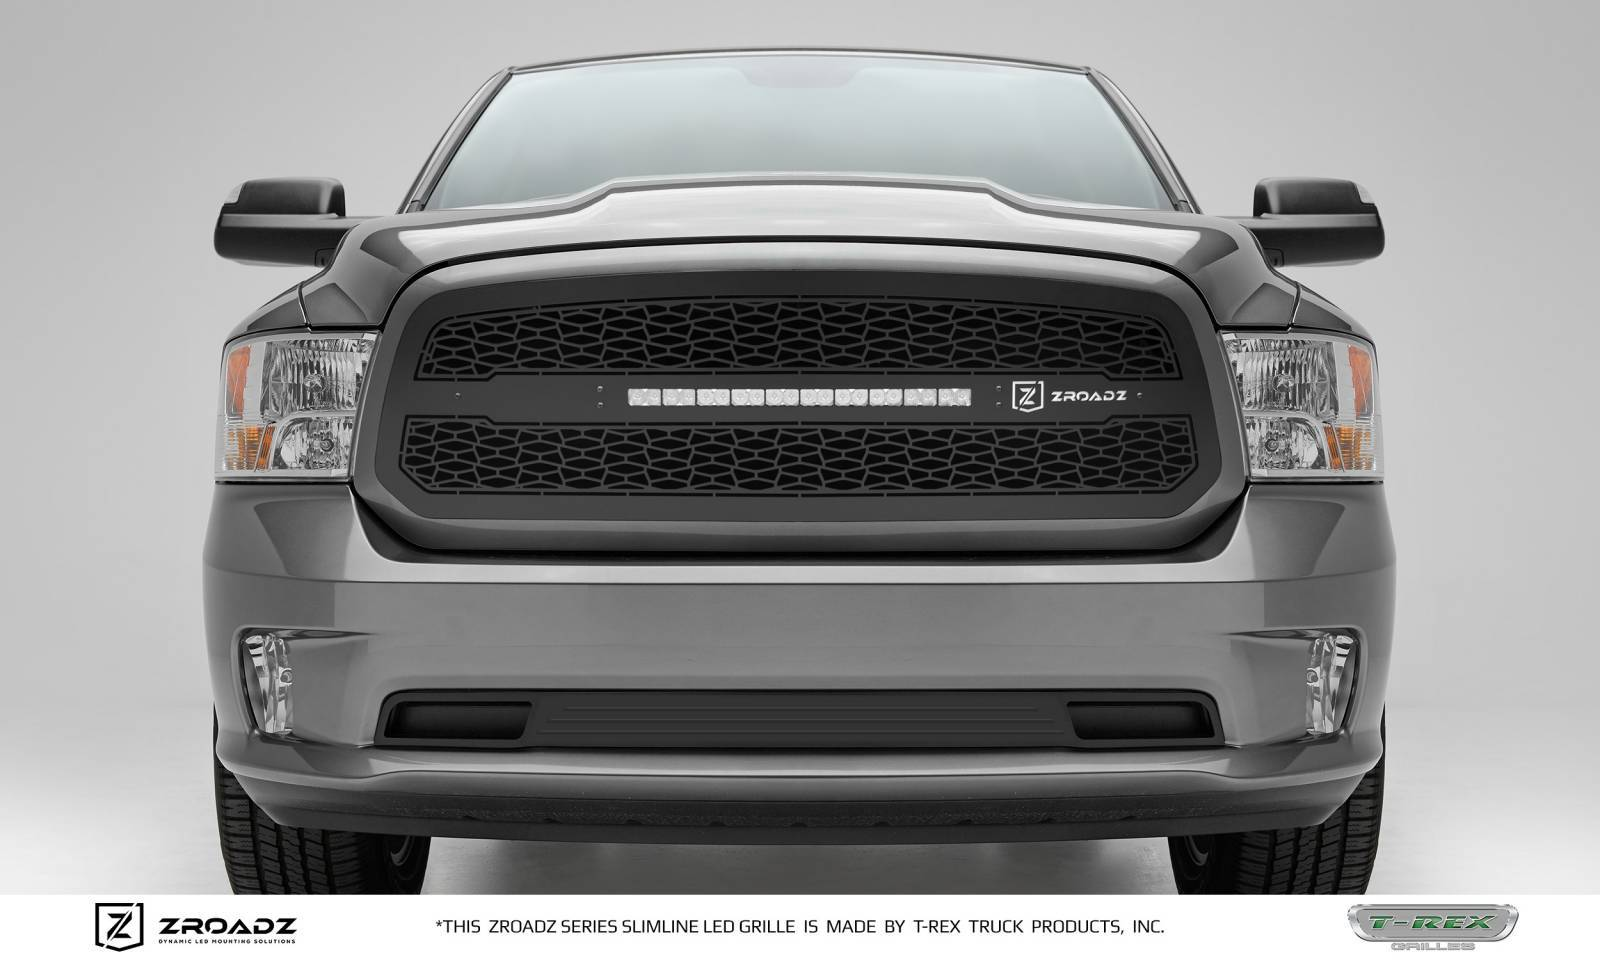 T-REX Grilles - 2013-2018 Ram 1500 Main Grille, Including (1) 20 Inch ZROADZ LED Straight Single Row Slim Light Bar - Z314581